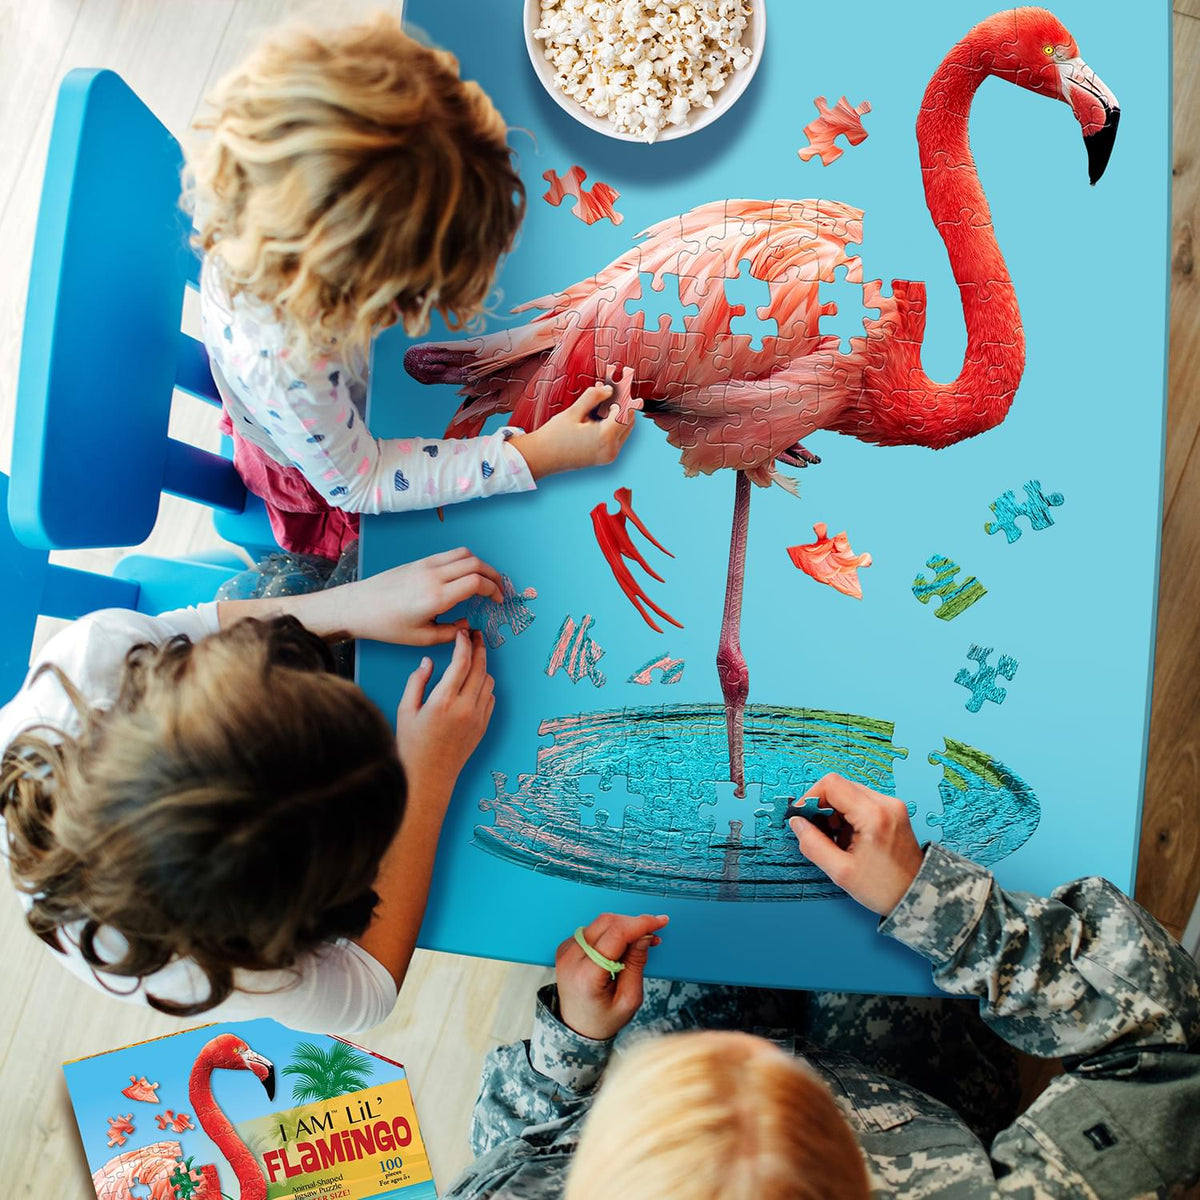 I AM Lil Flamingo 100 Piece Animal-Shaped Jigsaw Puzzle